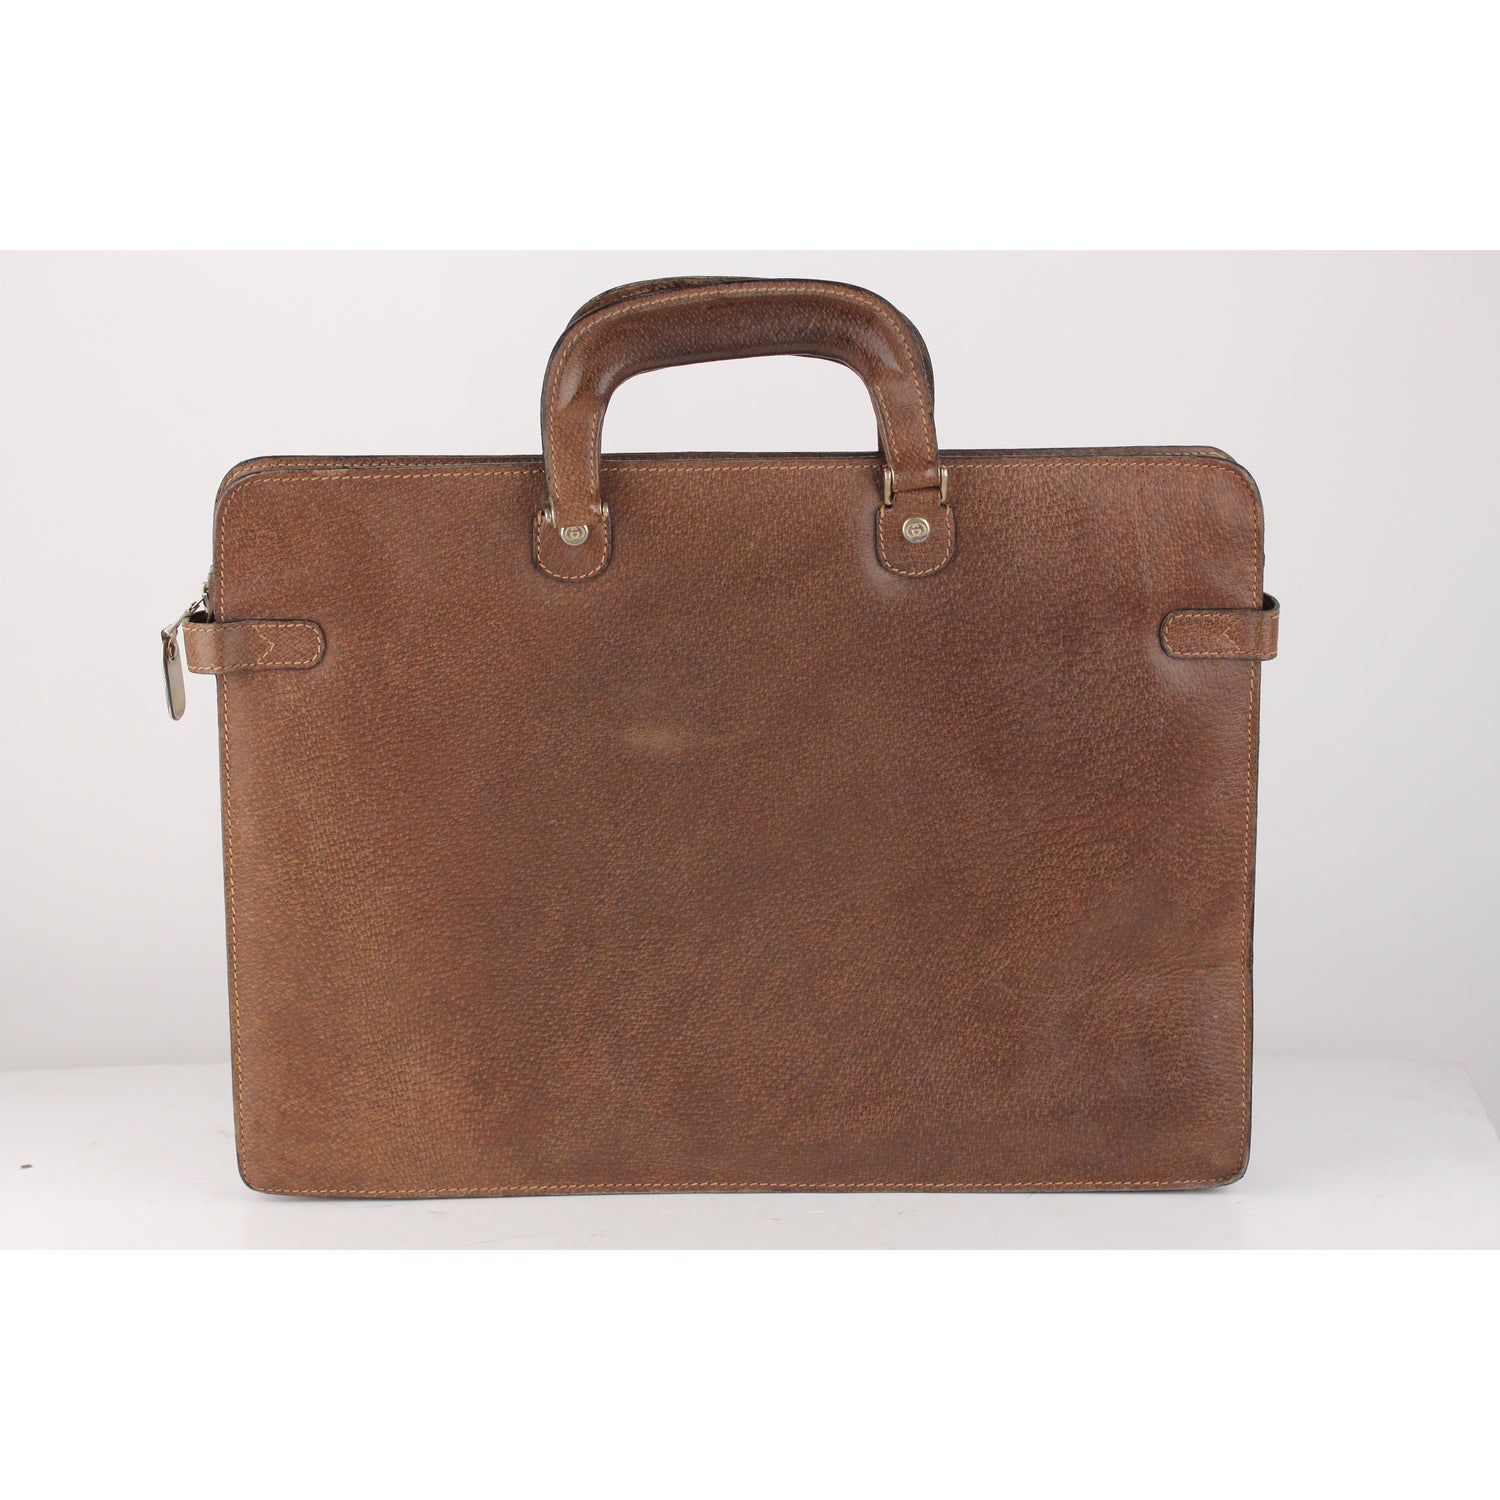 a373e428b Gucci Vintage Tan Leather Briefcase Work Business Bag at 1stdibs